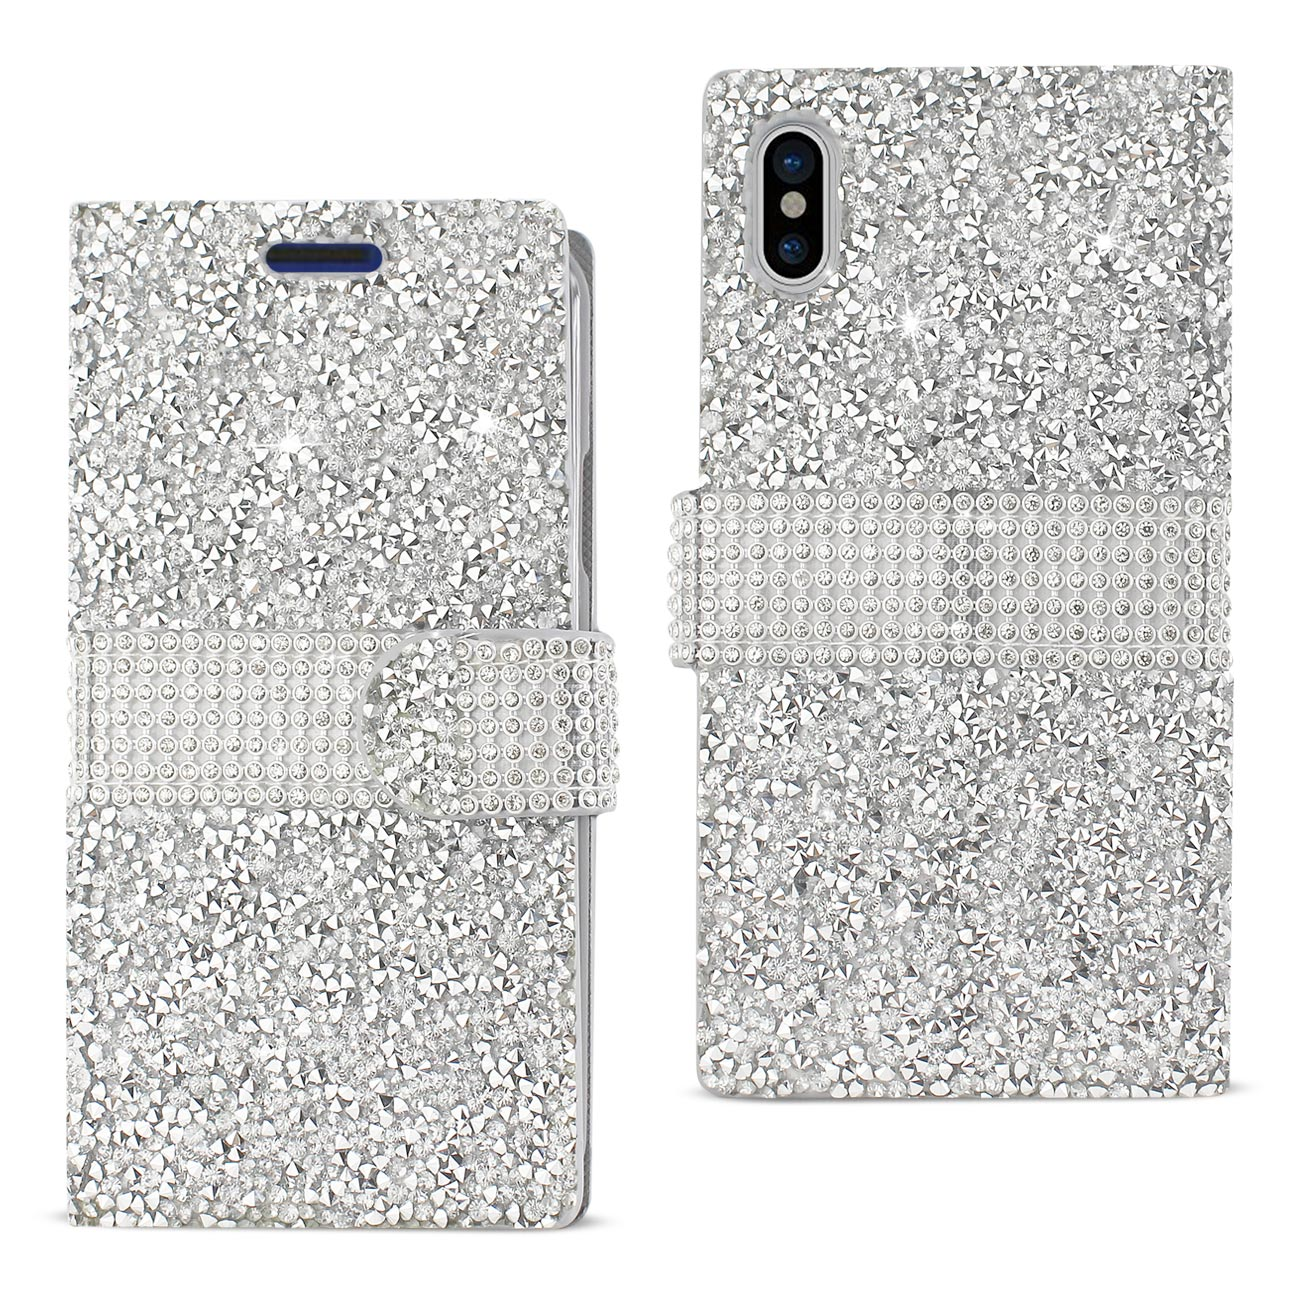 REIKO IPHONE X DIAMOND RHINESTONE WALLET CASE IN SILVER